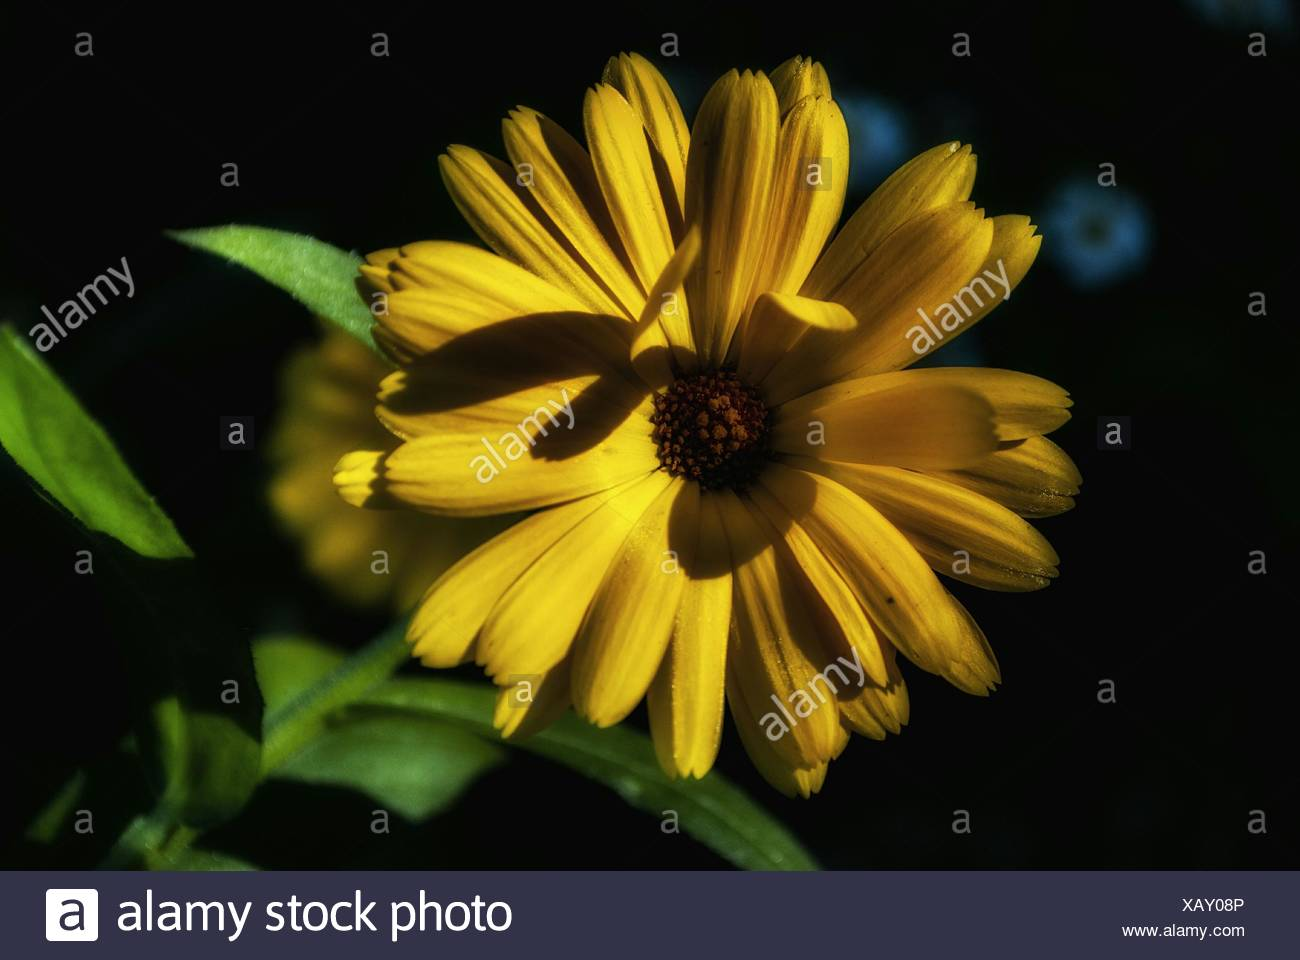 Close Up Of Yellow Flower Blooming Outdoors At Night Stock Photo